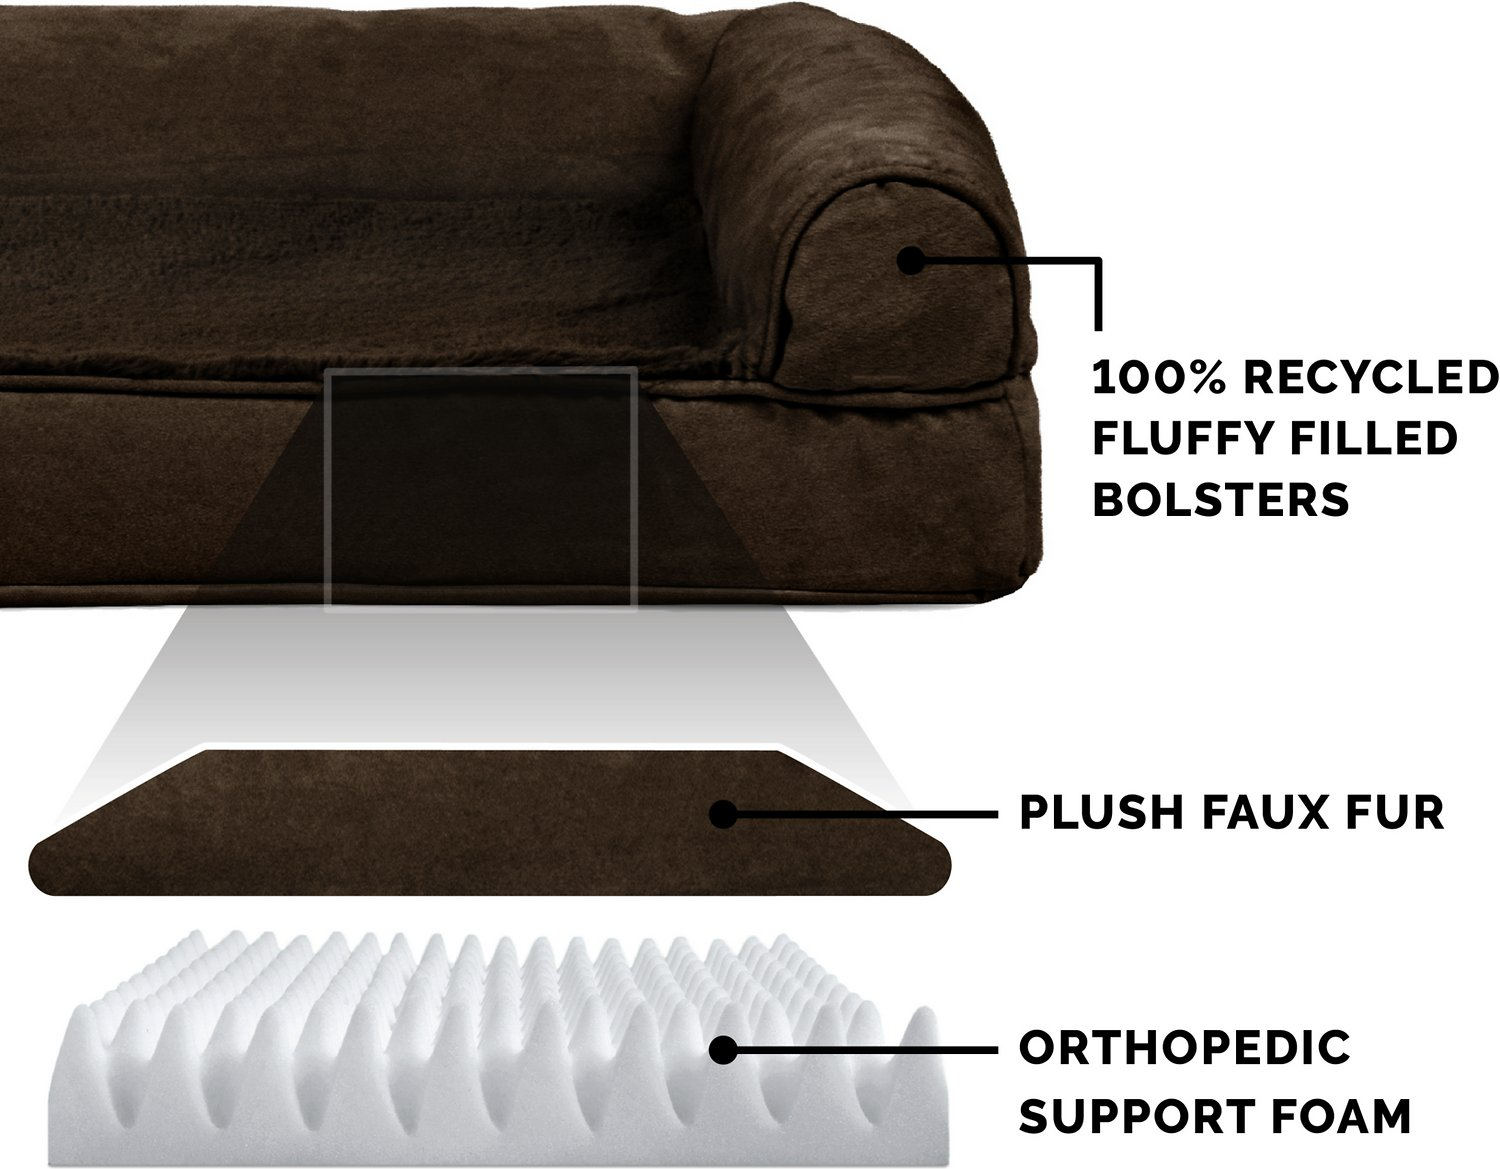 Medium Ultra Plush Faux Fur /& Suede Pillow Cushion Traditional Sofa-Style Living Room Couch Pet Bed w// Removable Cover for Dogs /& Cats Deep Pool Furhaven Pet Dog Bed